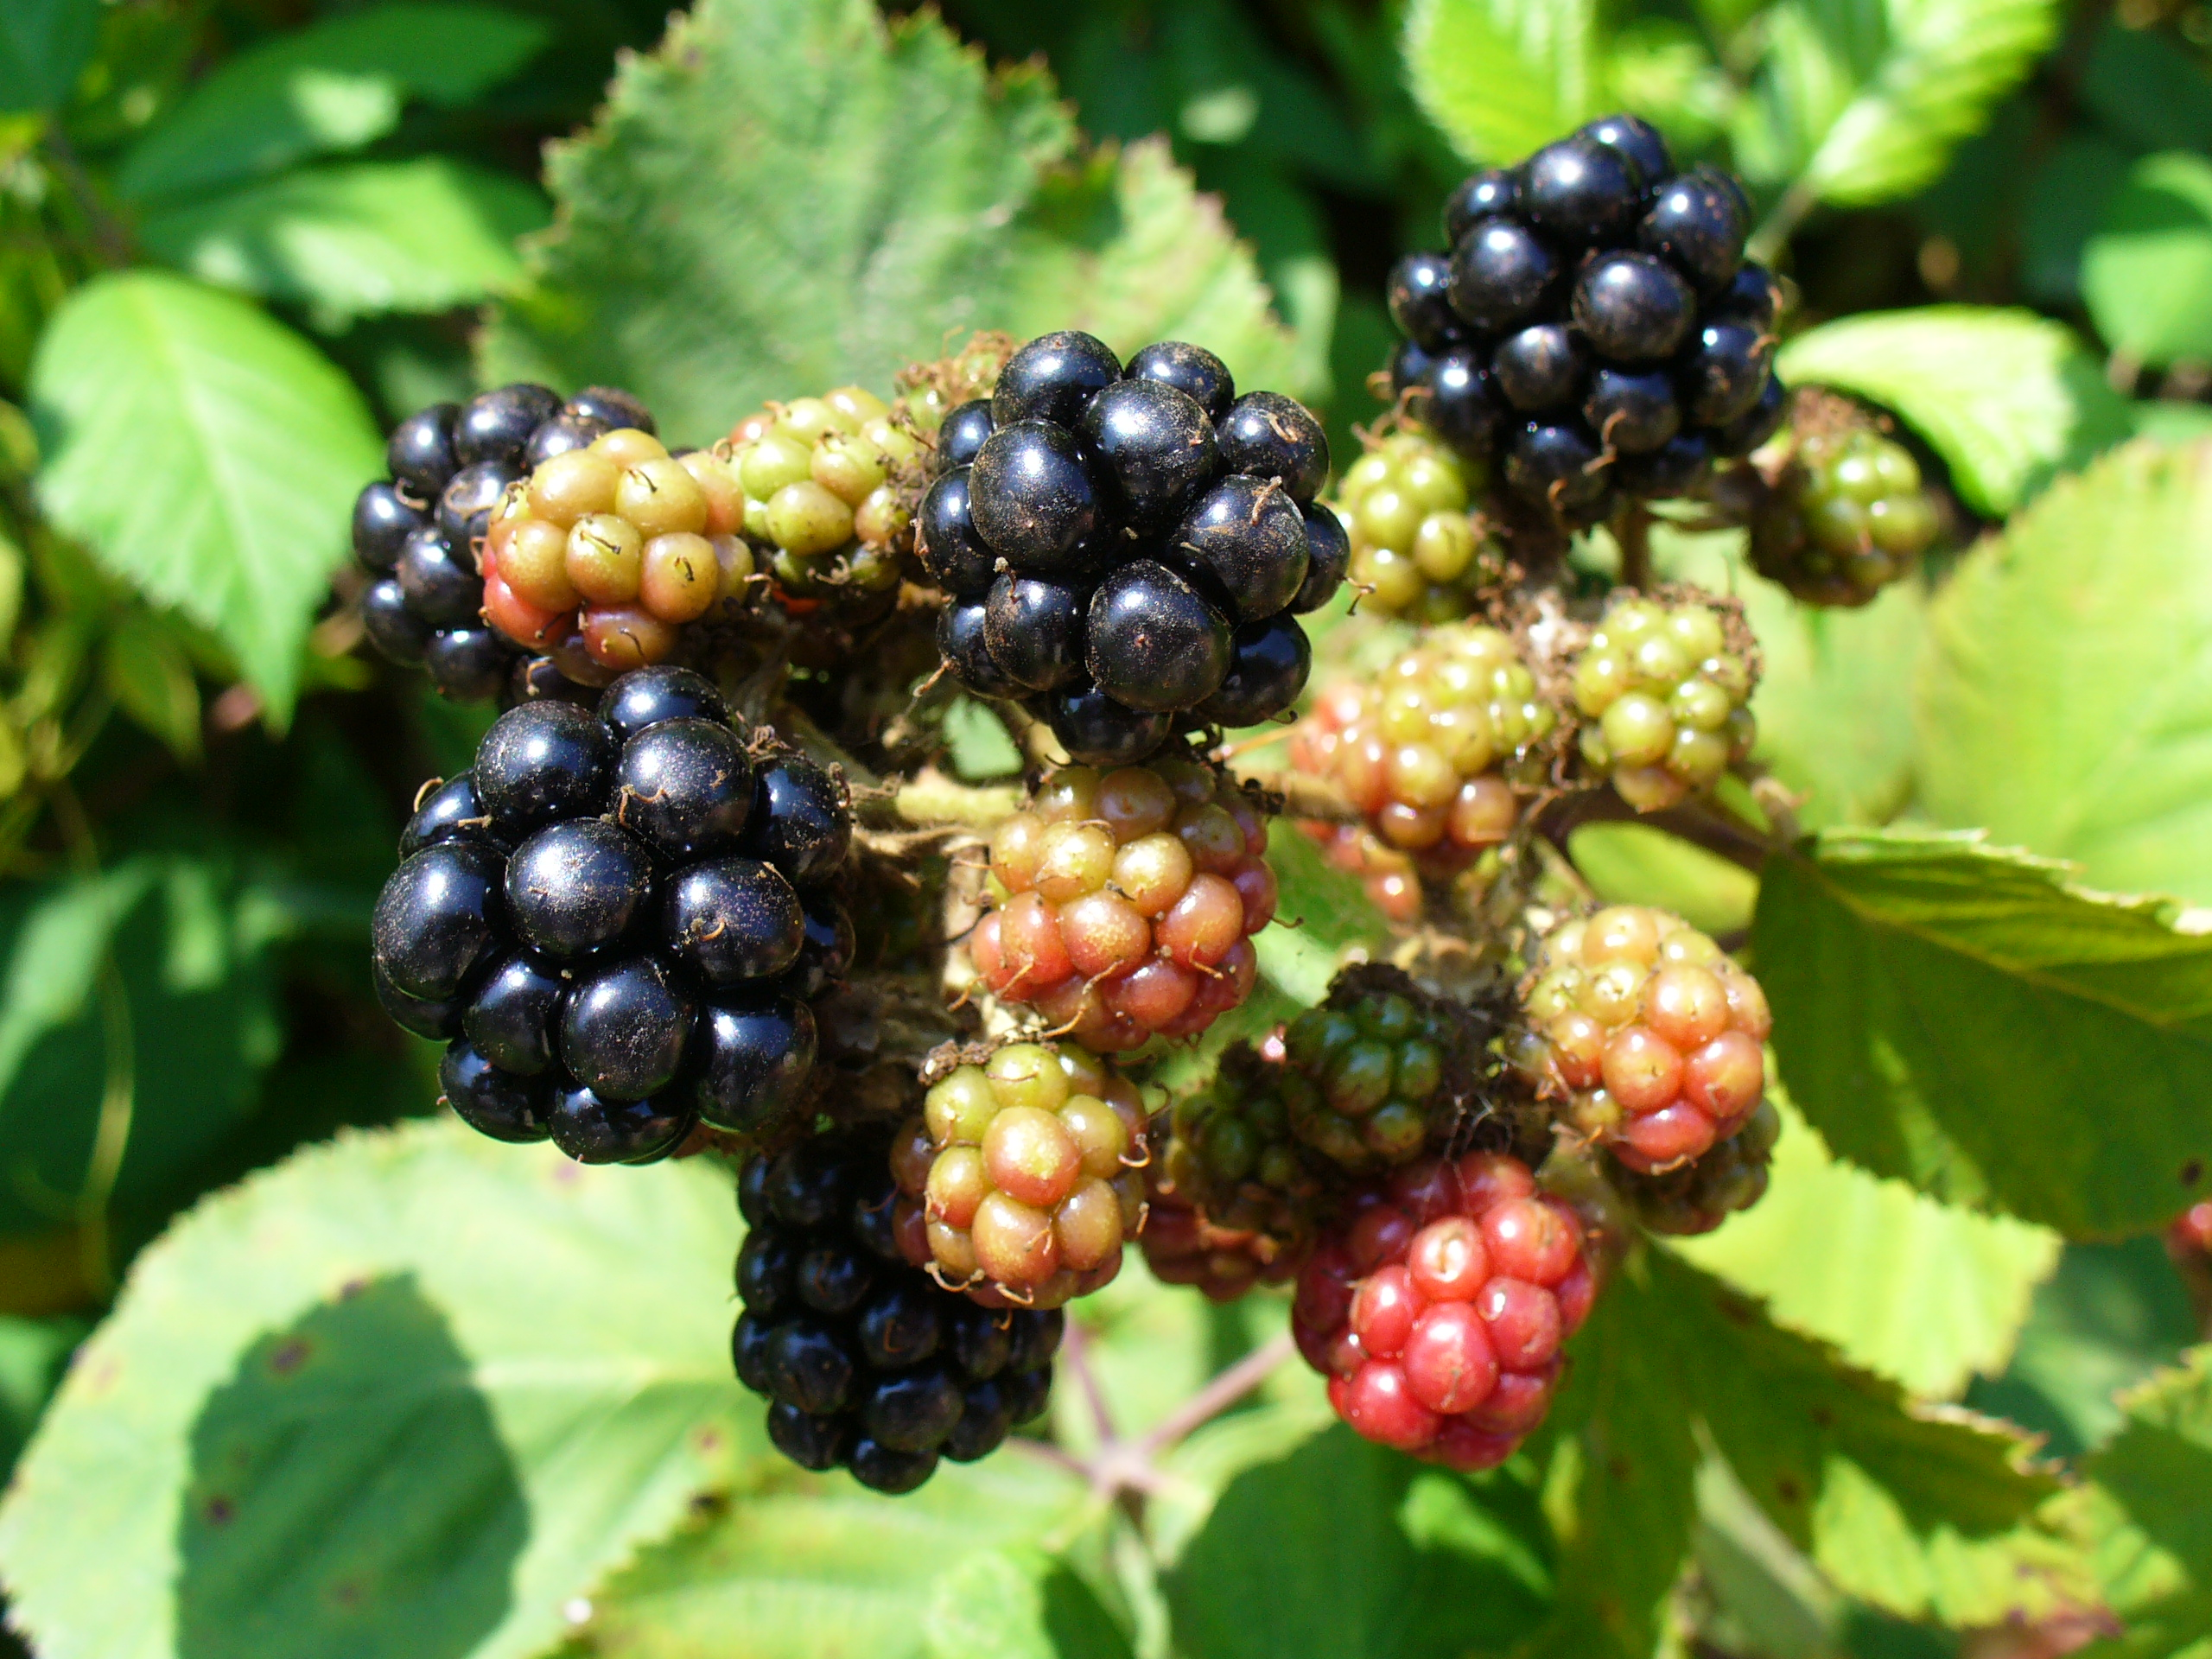 A clump of blackberries, some ripe, some not.